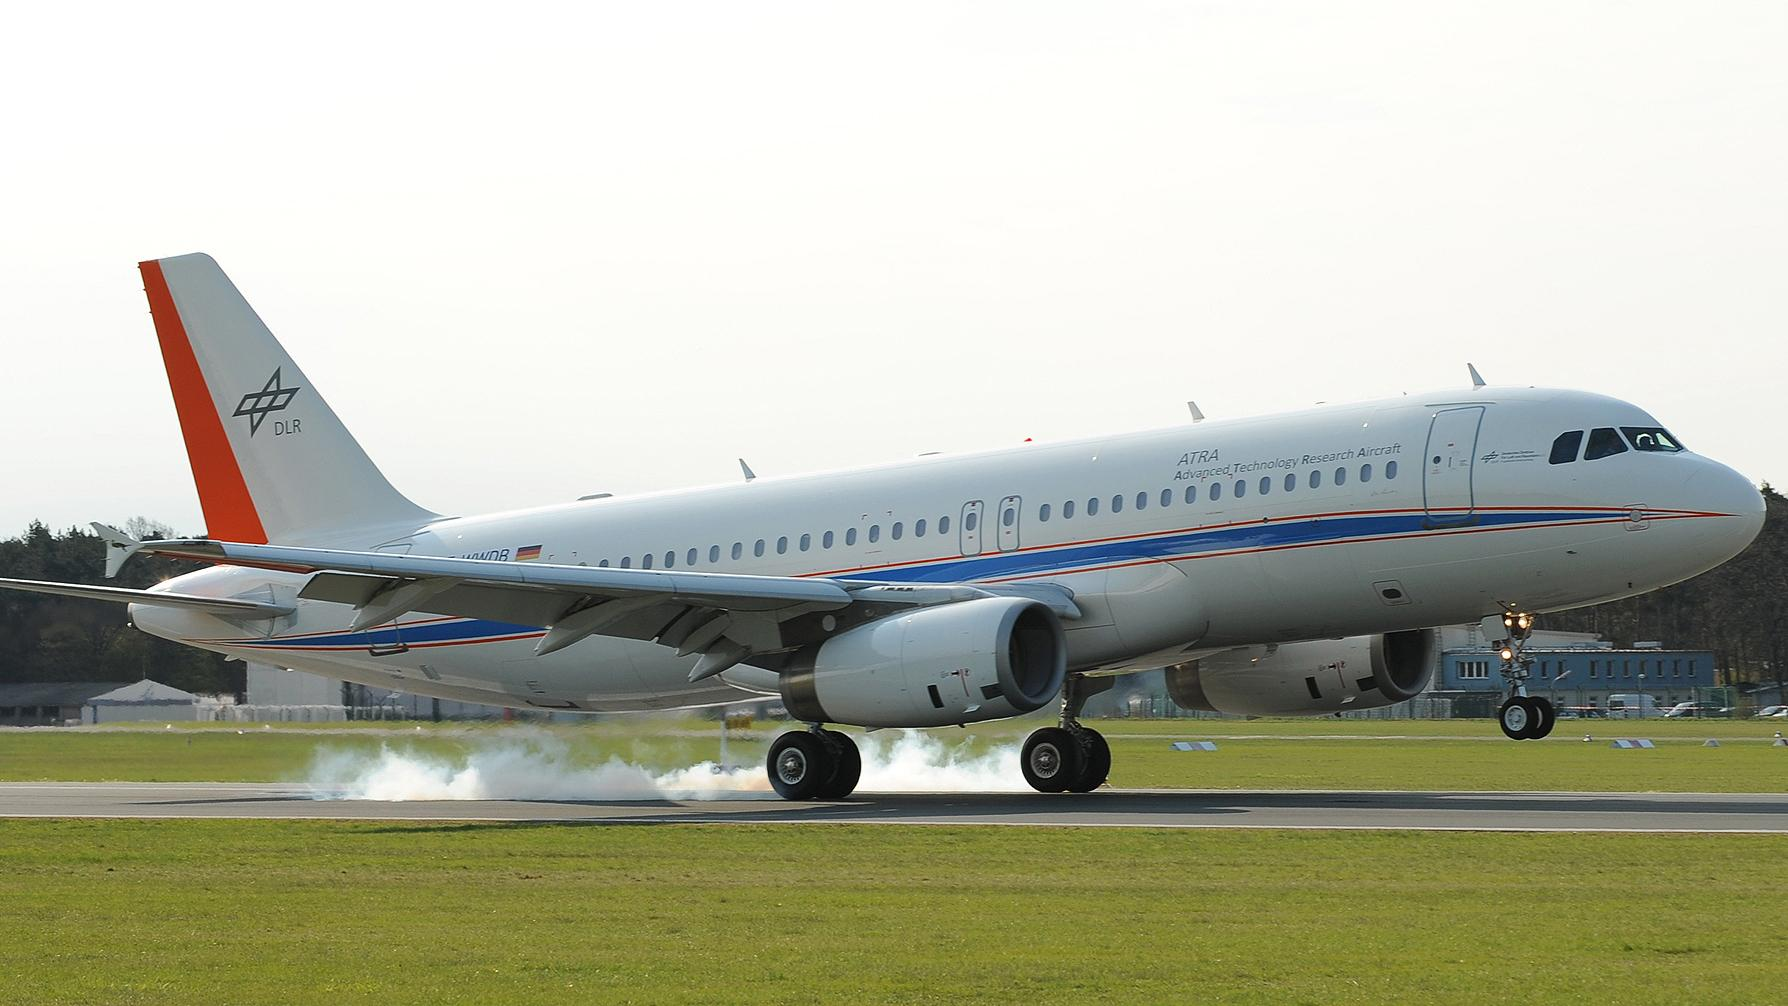 DLR research aircraft A320-232 'D-ATRA'